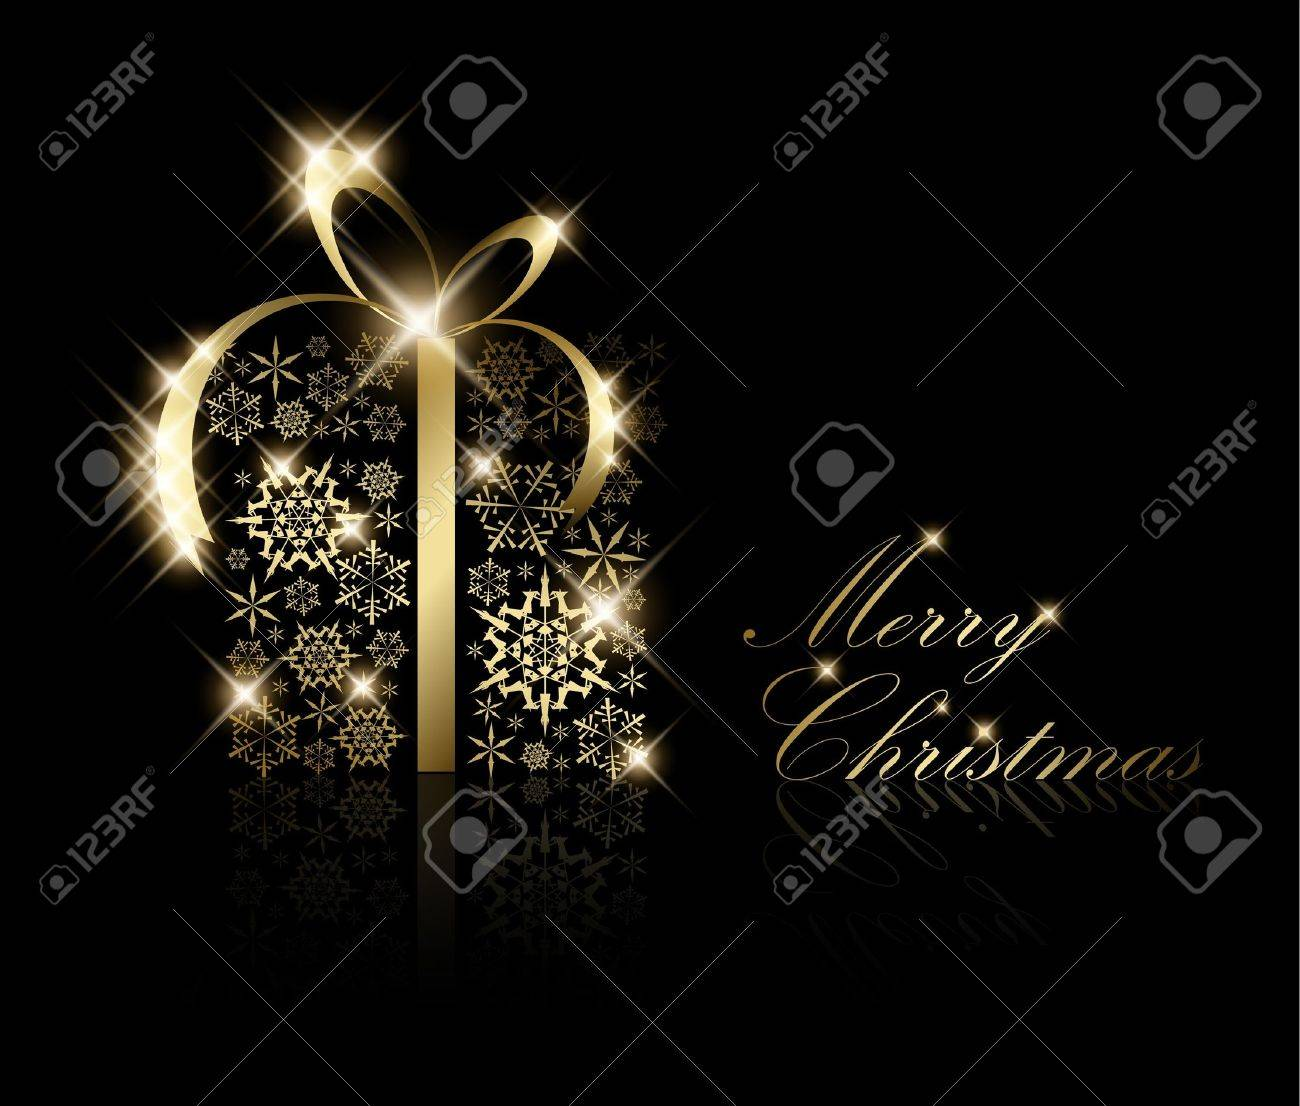 Christmas present box made from golden snowflakes on black (vector) - 7779205